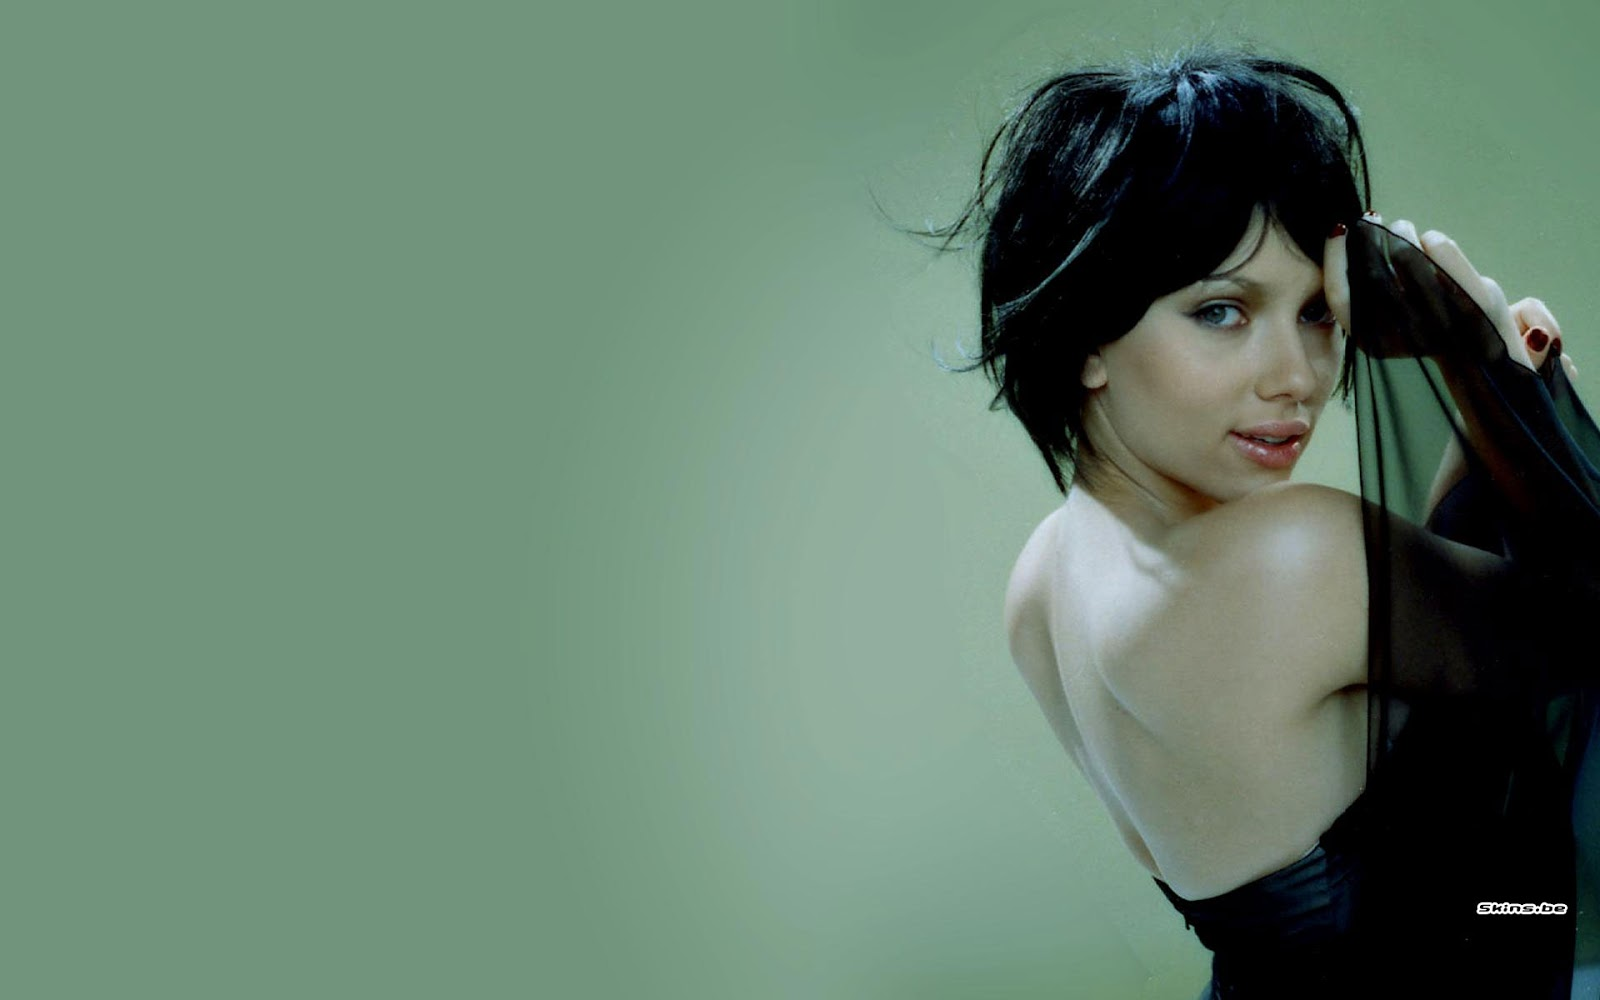 Scarlett Johansson Wallpaper: Desktop Wallpapers